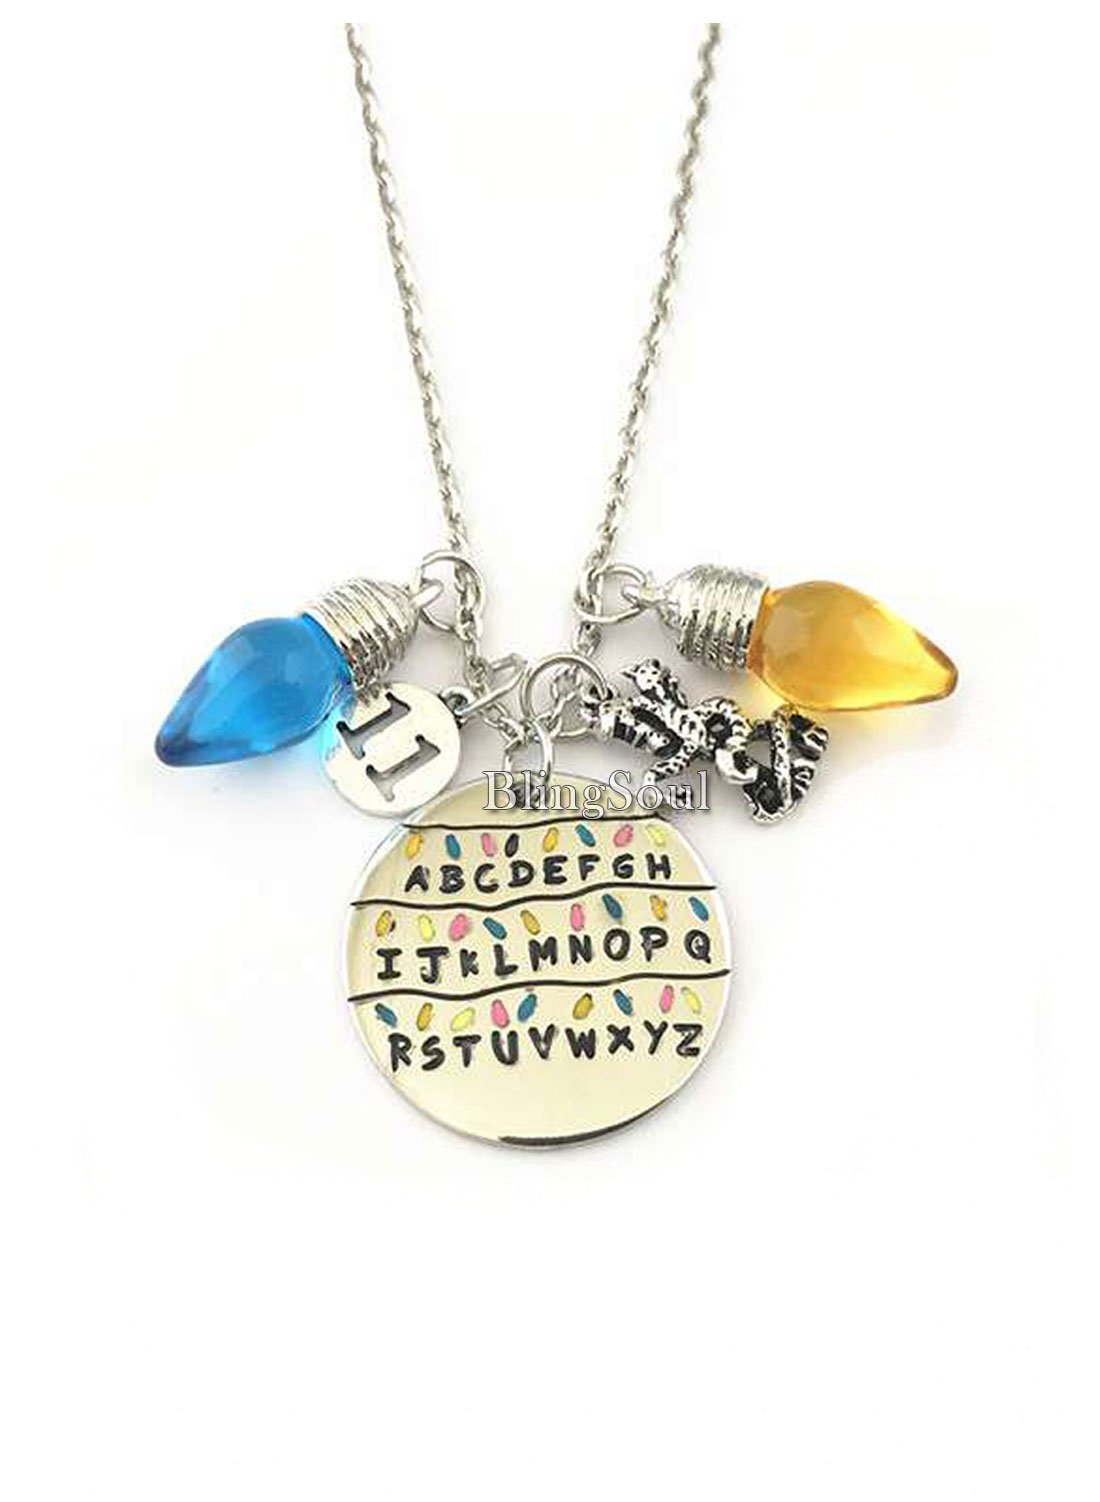 BlingSoul Stranger Thing Necklace Jewelry Merchandise - ABCD Necklace Girls